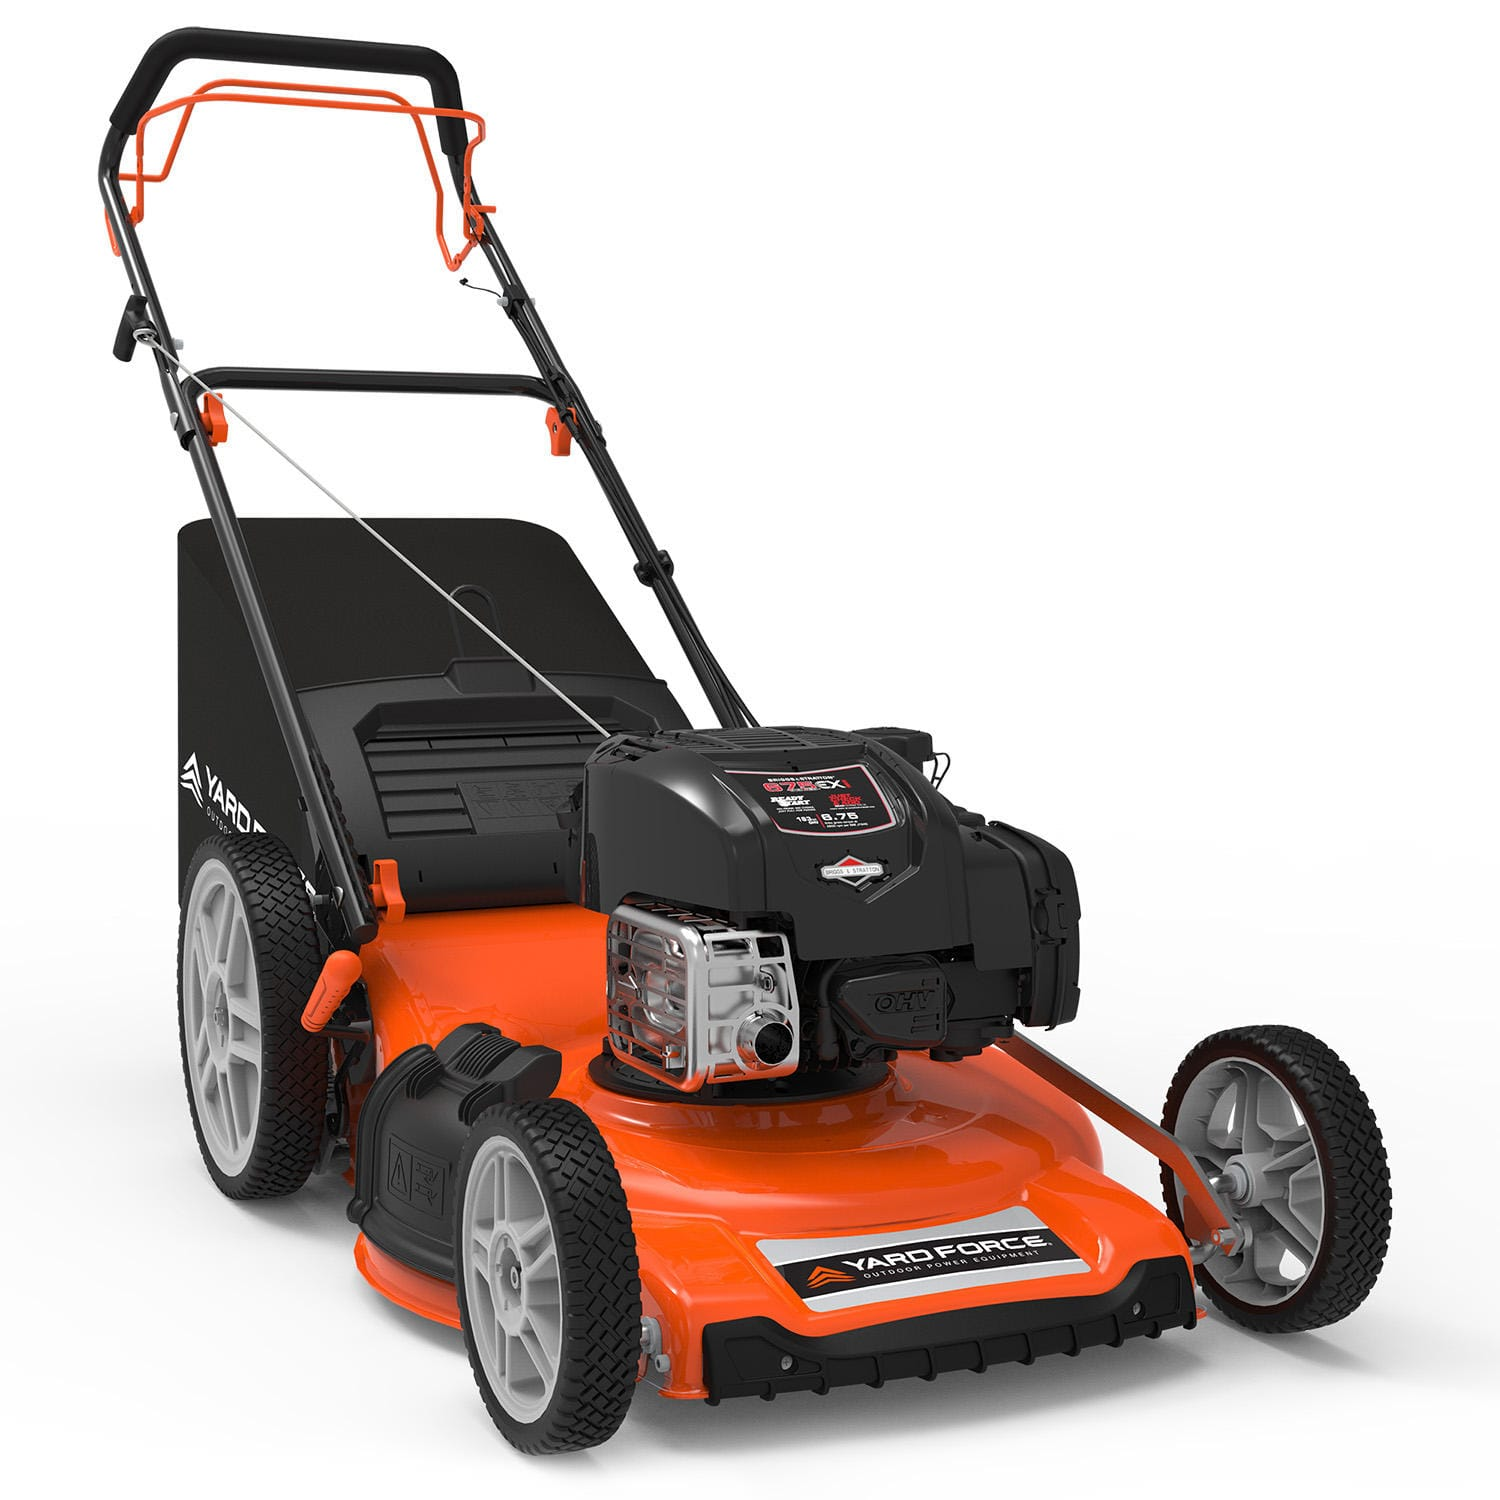 """Sam's Club Members : Yard Force 22"""" Self-Propelled 3N1 Mower with Briggs & Stratton 163cc Engine, $249.98, free shipping"""